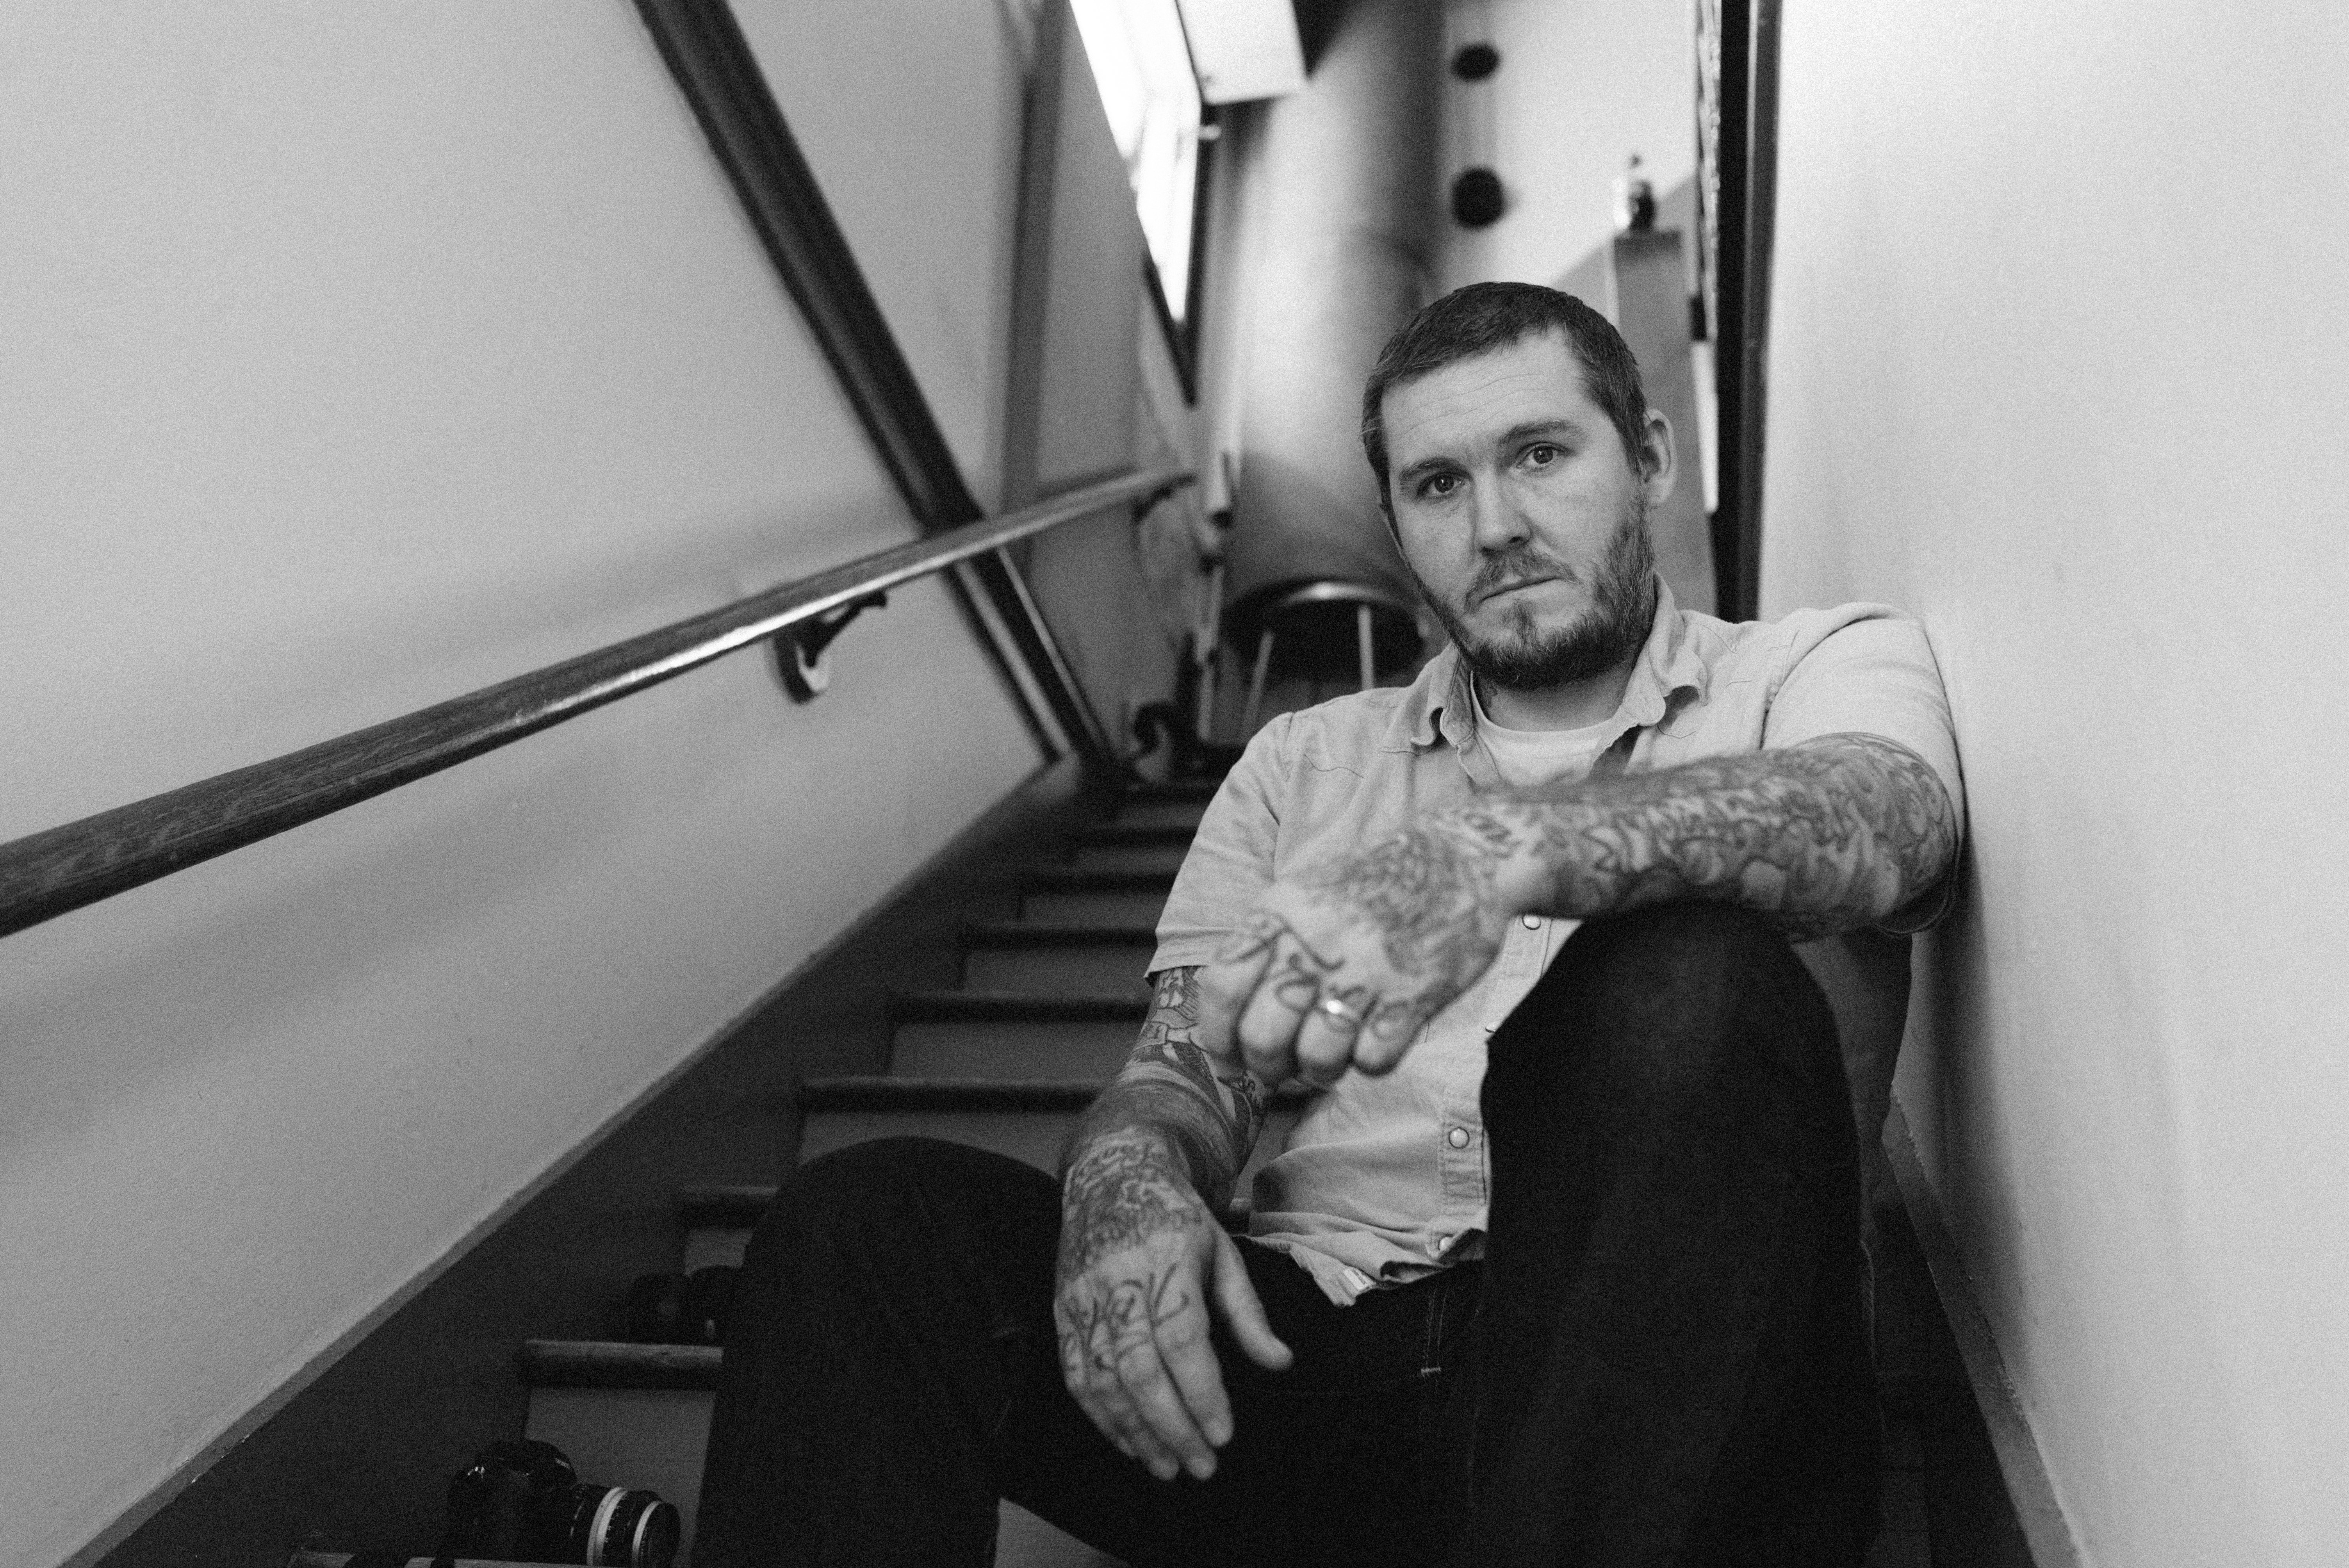 *CANCELED* Brian Fallon & the Howling Weather (rescheduled from 4/4, 8/2)